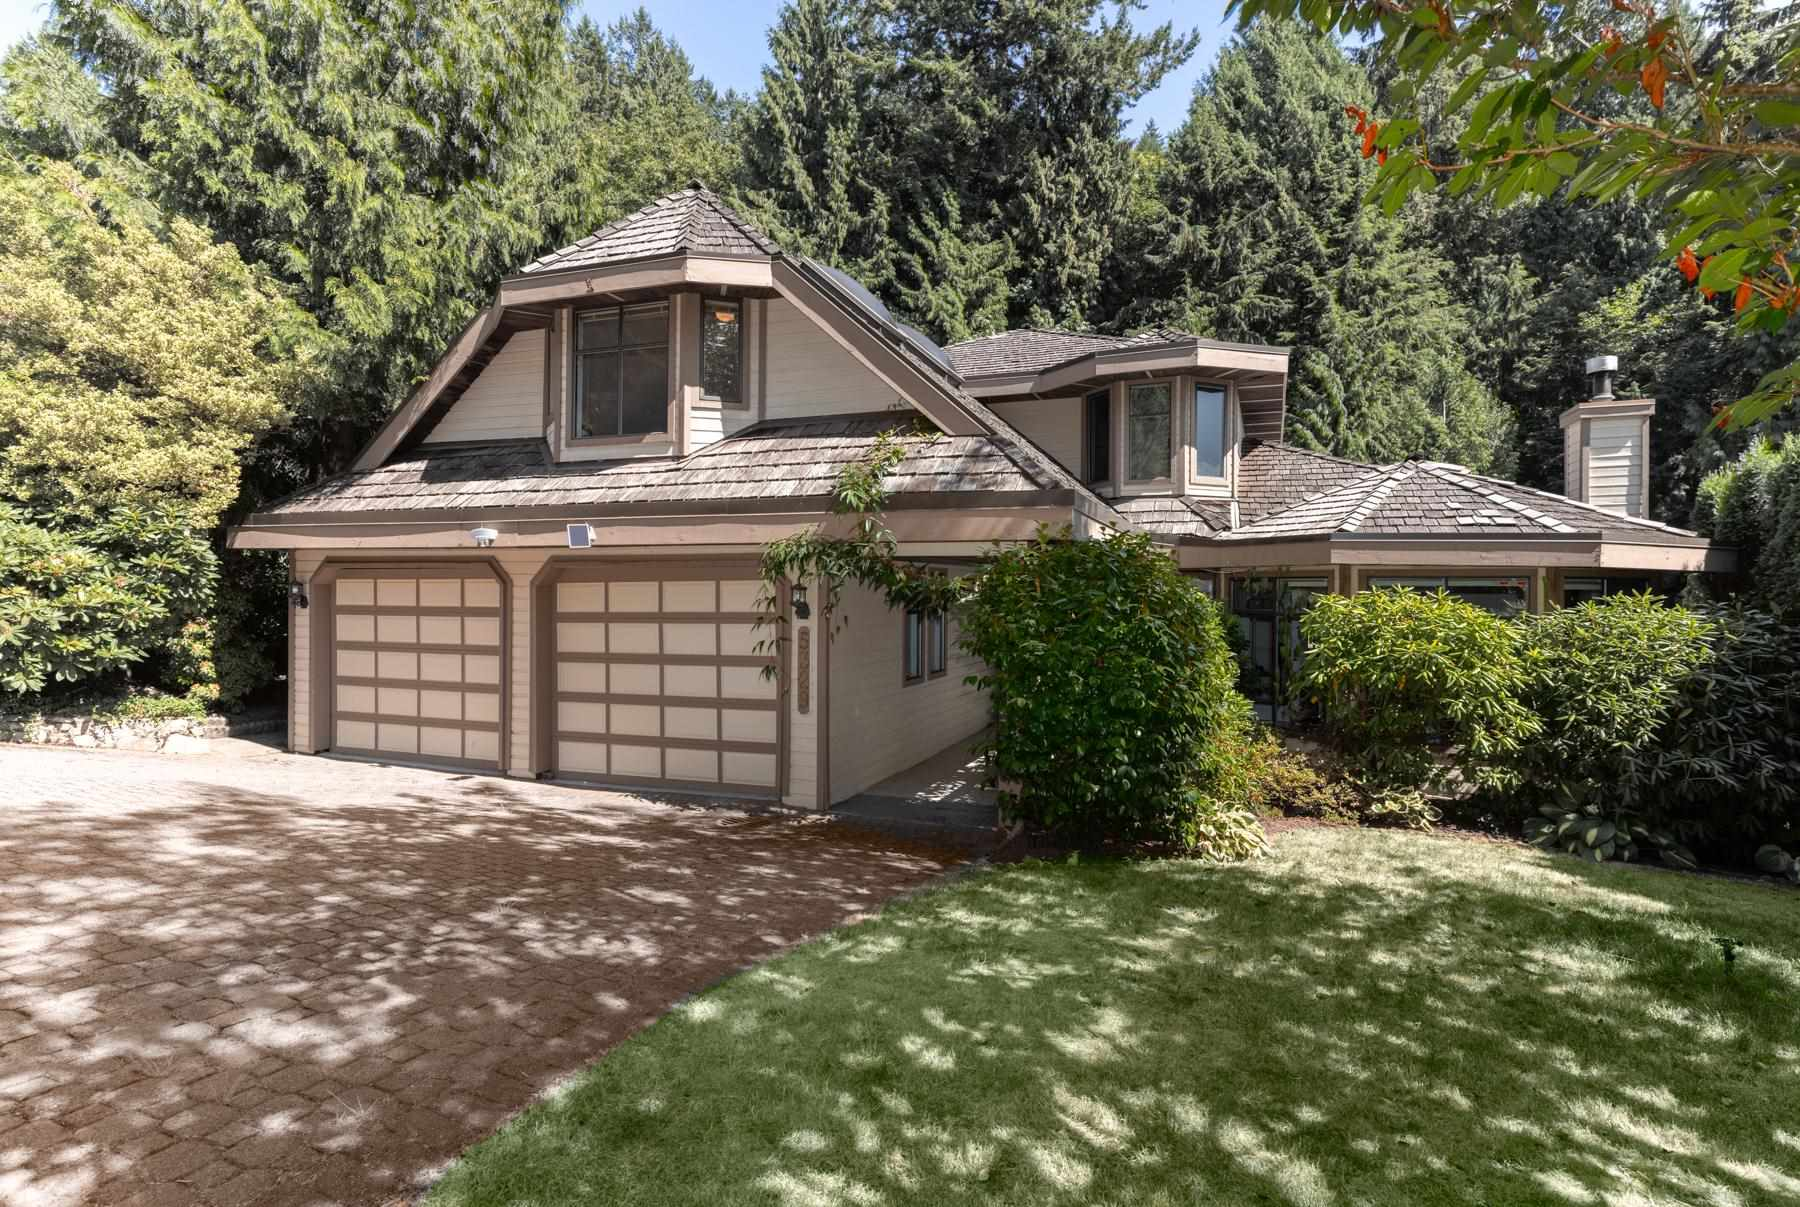 Listing image of 5329 WESTHAVEN WYND